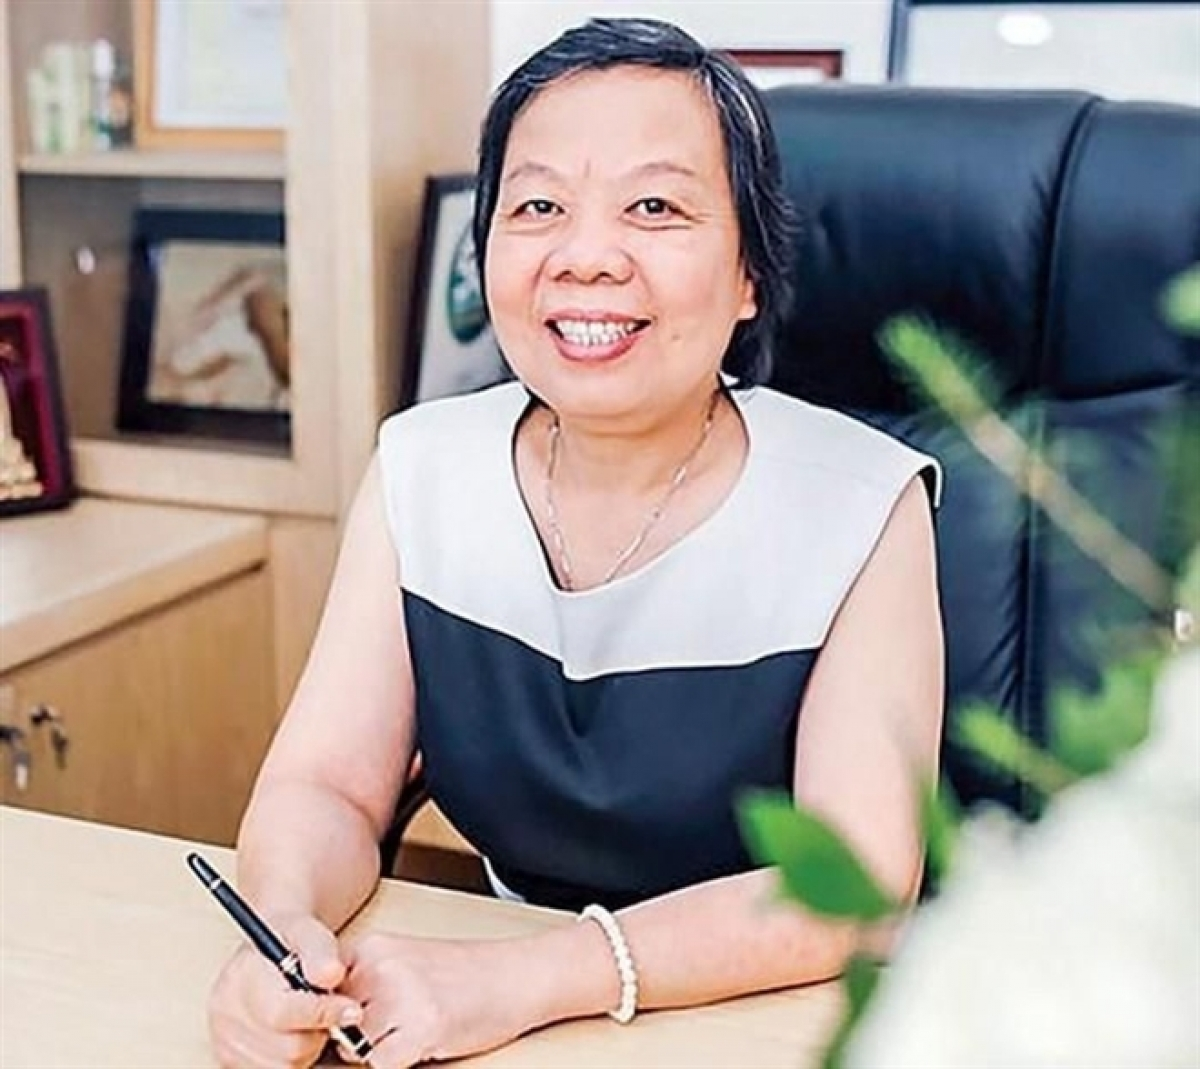 5. Truong Thi Le Khanh, founder, chairwoman of Vinh Hoan Seafood Corp. (VHC) Born in 1961, Truong Thi Le Khanh, chairwoman of Vinh Hoan Corp., owns 79.1 million VHC shares, equivalent to VND3,380 billion as of March 7 and is ranked 32nd in the list of the richest people operating on the Vietnamese stock market. Forbes named Khanh in the list of 25 Asian Power Businesswomen in 2020, whilst in 2019, she was in the list of Forbes' 50 most influential women in Vietnam as voted on by Forbes.